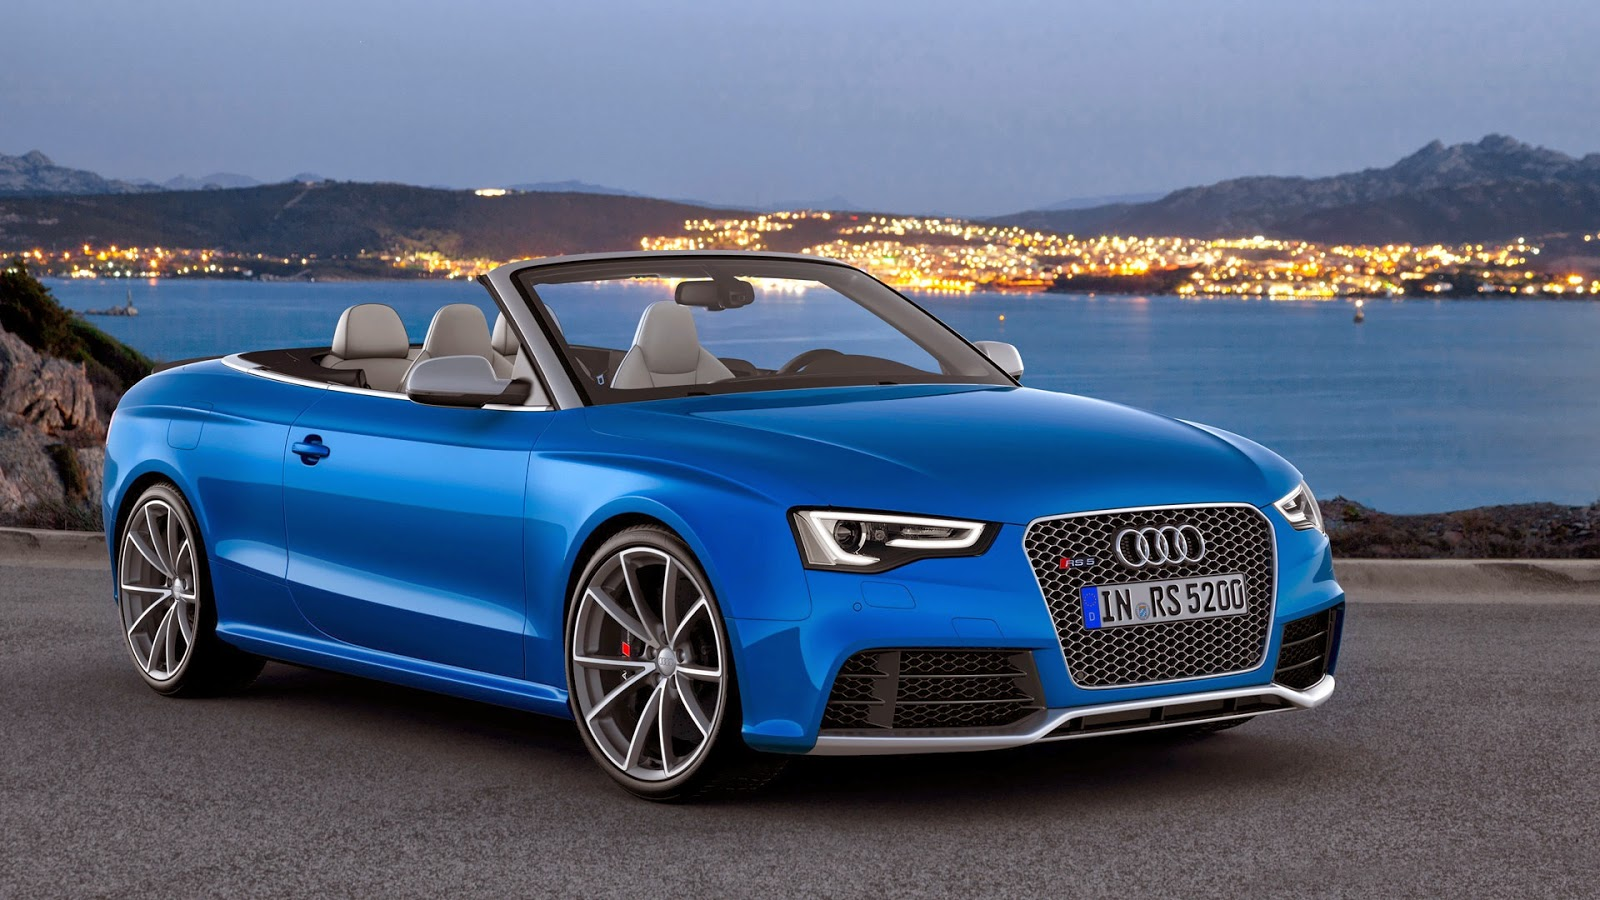 Blog About Newsentertainmentfunny Videospictures And Hd - Audi car ki photo